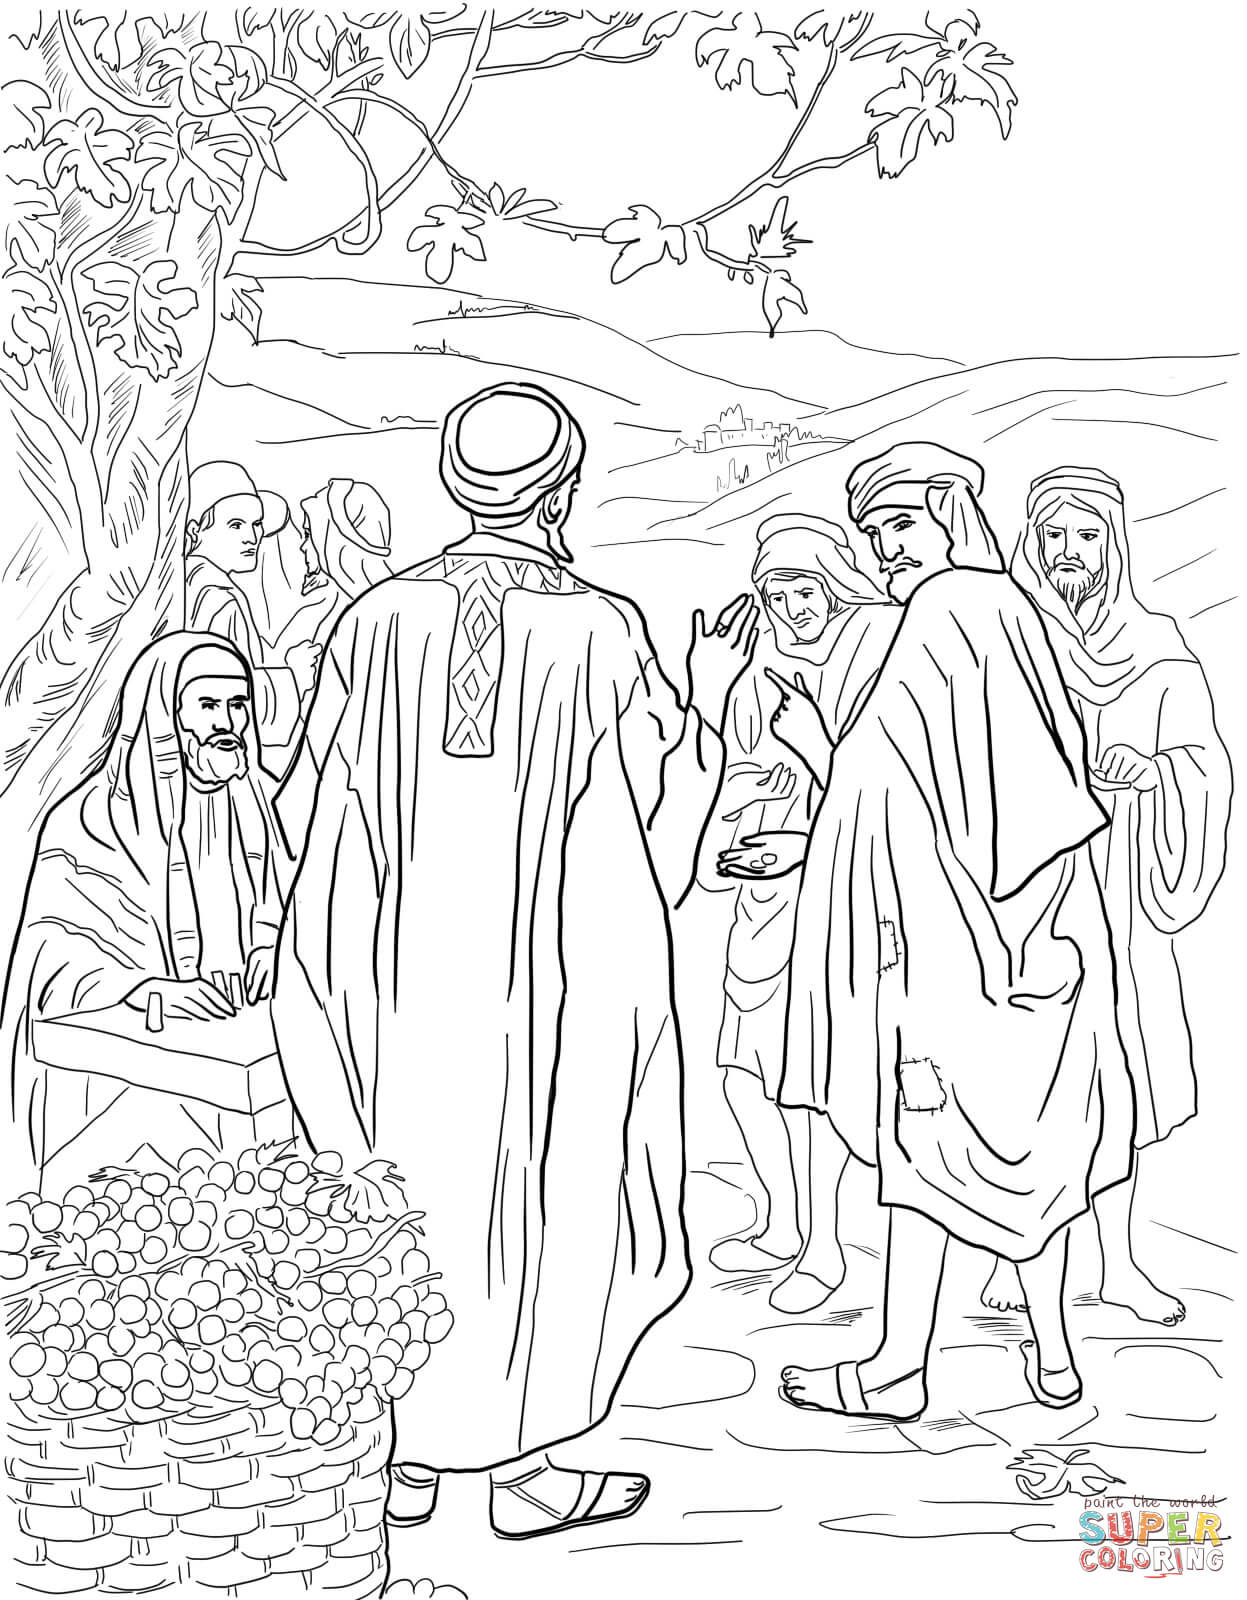 Prodigal Son Coloring Pages Preschool